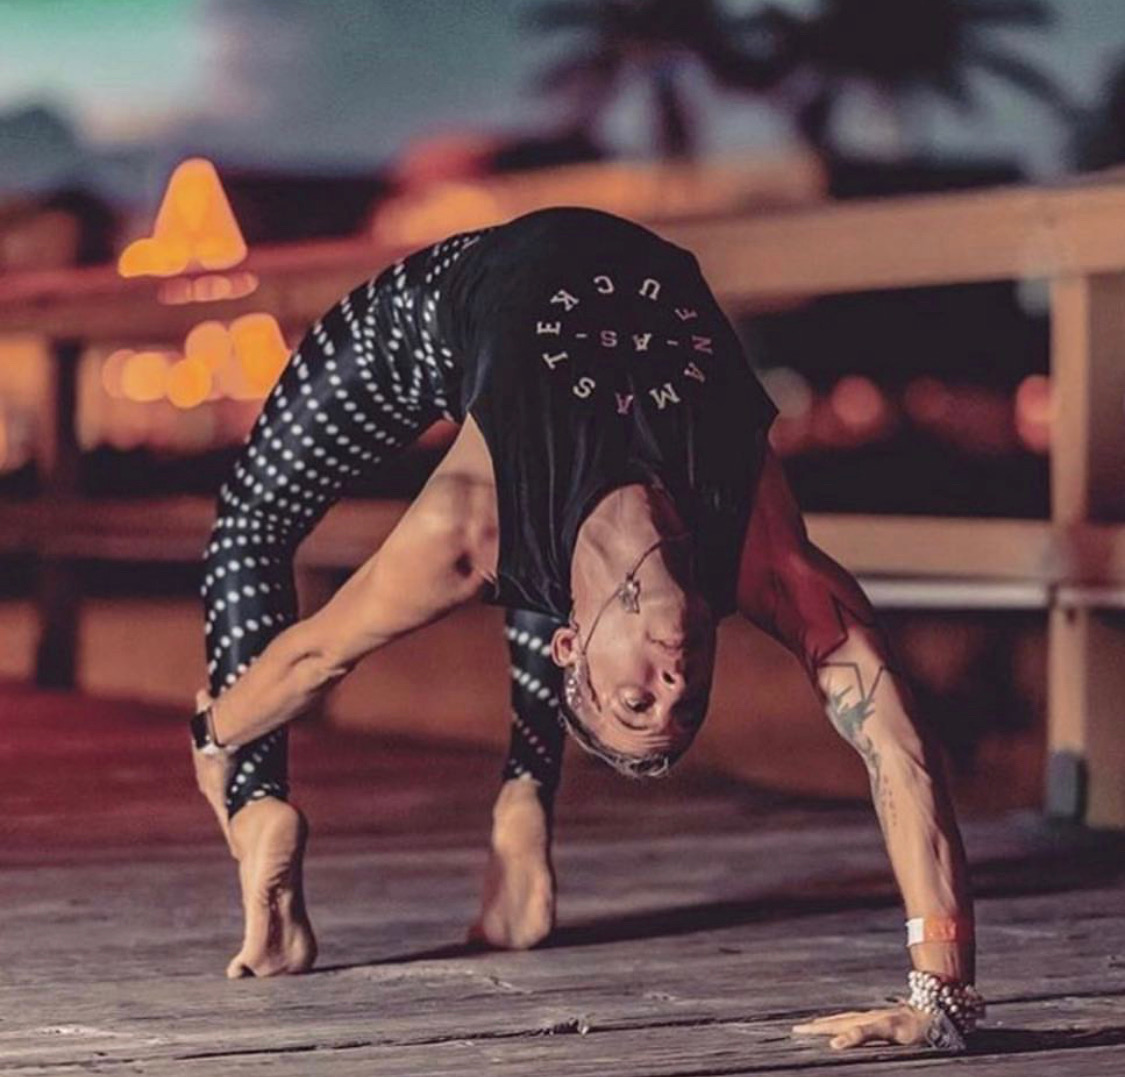 """Felix Rodriguez, Photographer & Yoga Teacher - Whats up beautiful bitches its Feelo! I am a yoga teacher, content creator, super dork and I am fucking pumped to join such a babe squad and capture all of you embracing the magic of Tulum and the bad ass vibes of Namaste As Fuck 💯 So many people ask me what the fuck Namaste means…and to so many people it means so many things!To me, this company is about embracing the realness that is you, seeing it in others and accepting all of it. I see you all out there strutting your stuff, then acting all shy and insecure in front of the camera, just be you! Let me show you through my eyes, just how fucking awesome you are!This retreat is going to be absolutely magical ⚡️and I can't wait to share it with all of you. Let's break the fucking gram with our sexiness!!! (Queue """"I'm bringing sexy back"""") 🕺💃You can check out some of Felix's awesome work on his website, feelo.life."""